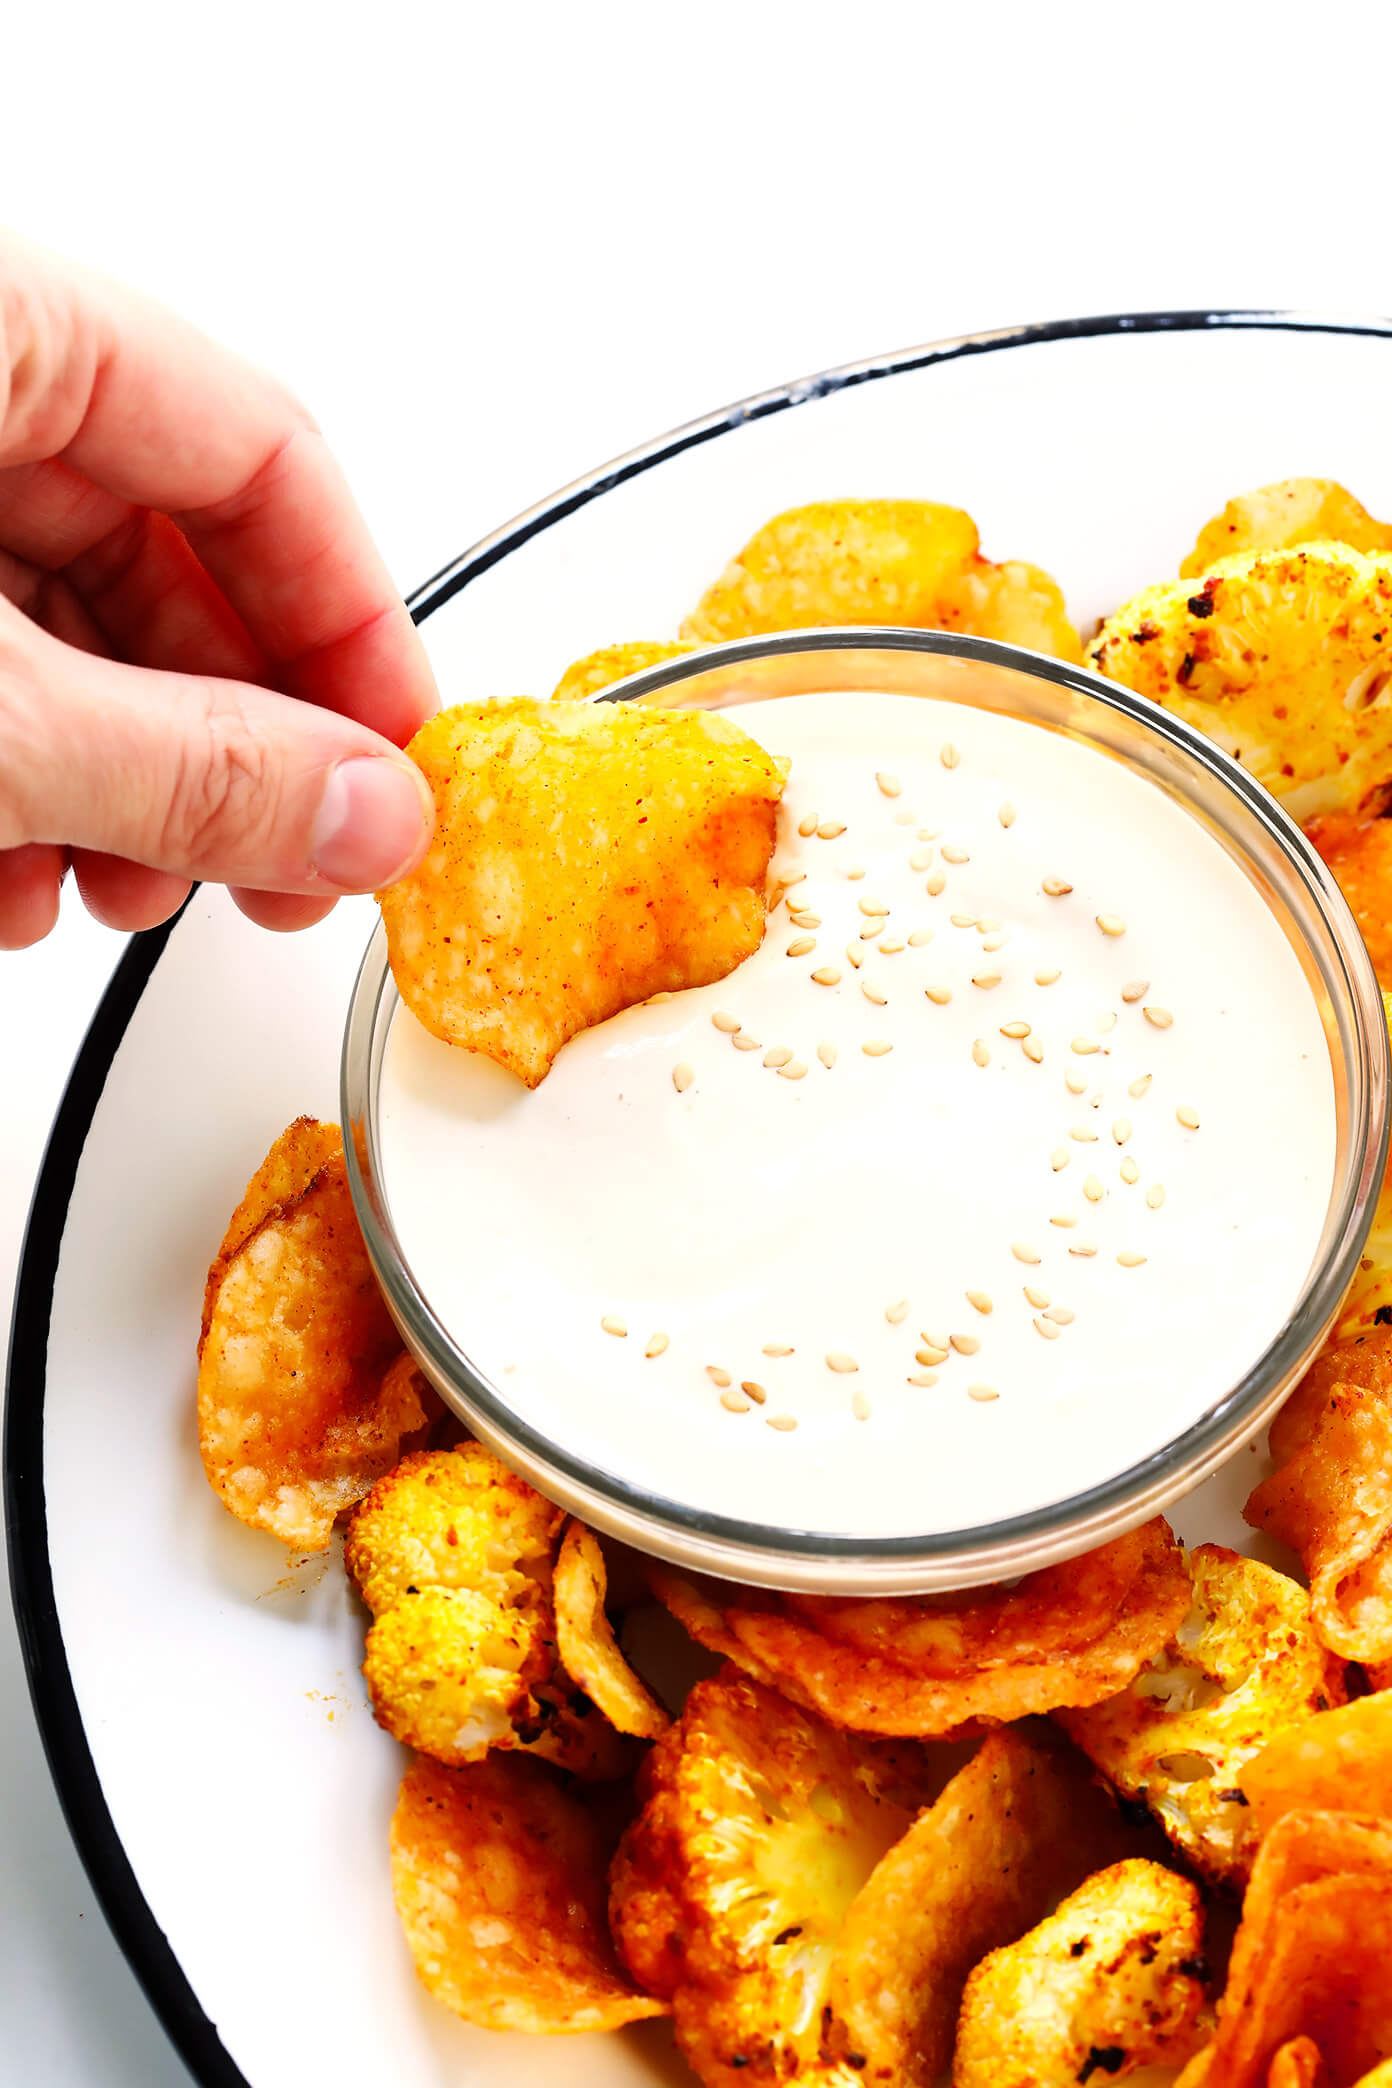 5-Minute Dreamy Tahini Dip with Roasted Cauliflower and Kettle Chips